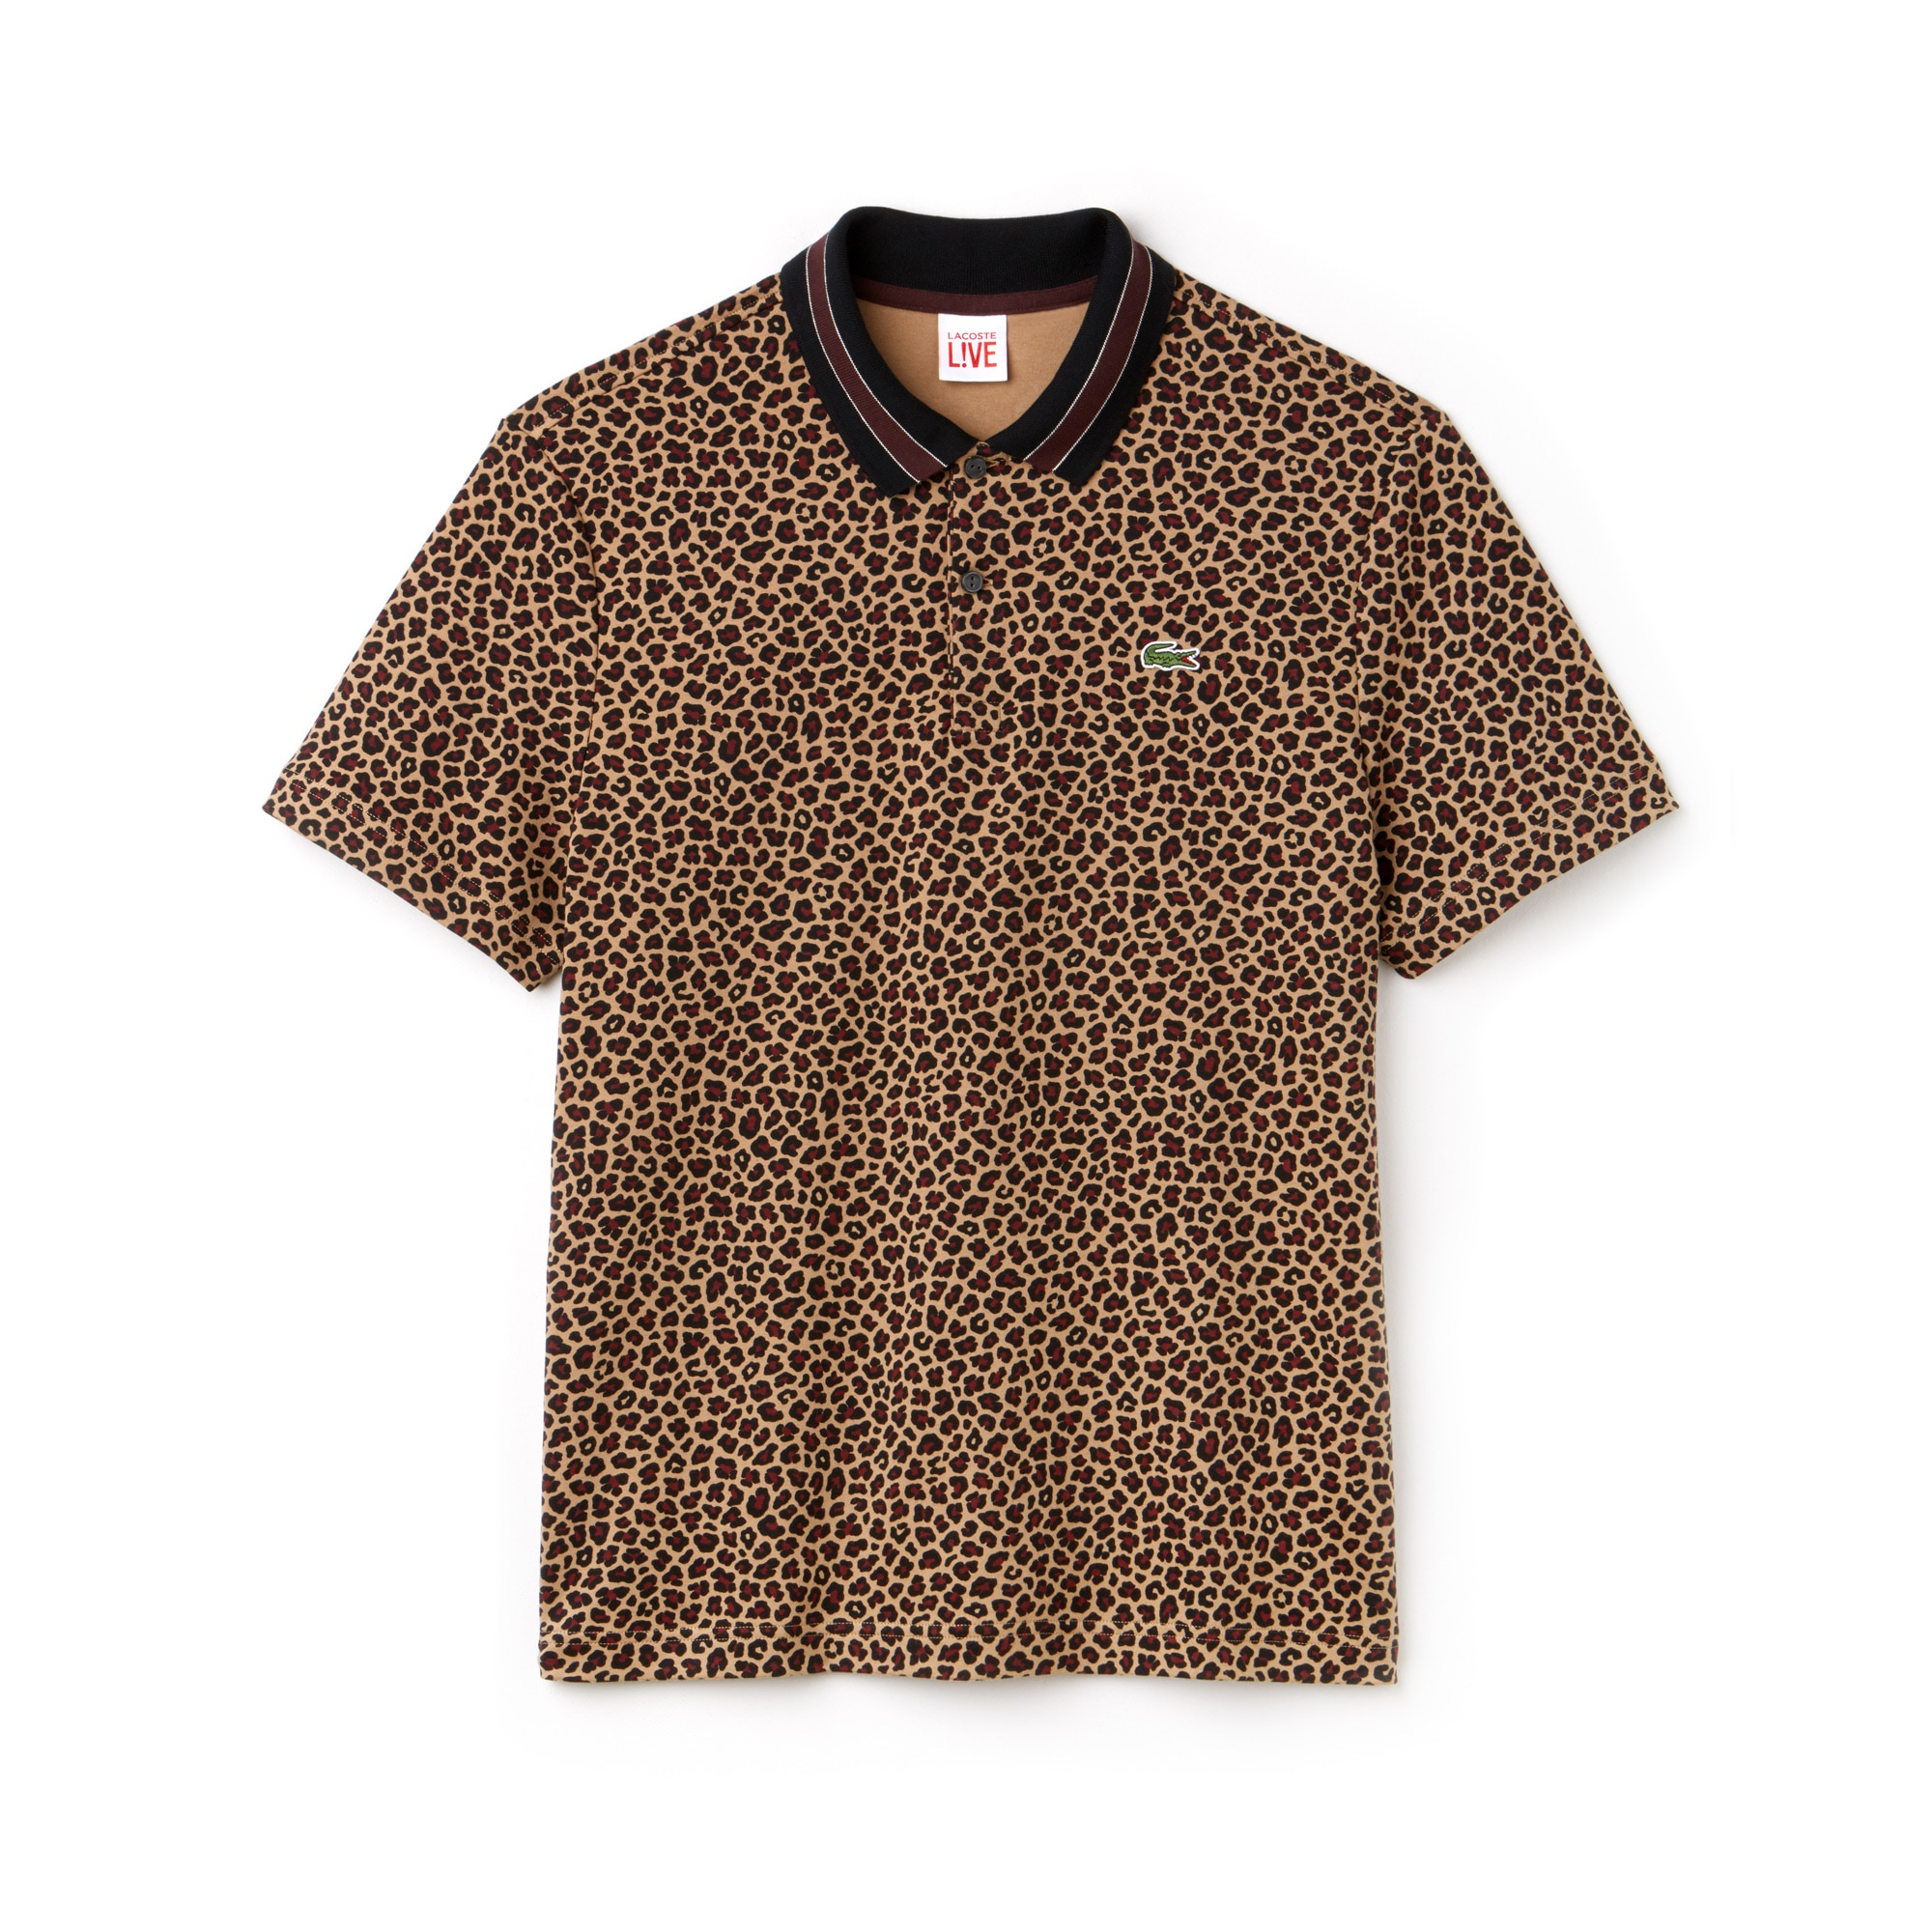 Lacoste LIVE-polo heren regular fit interlock met panterprint